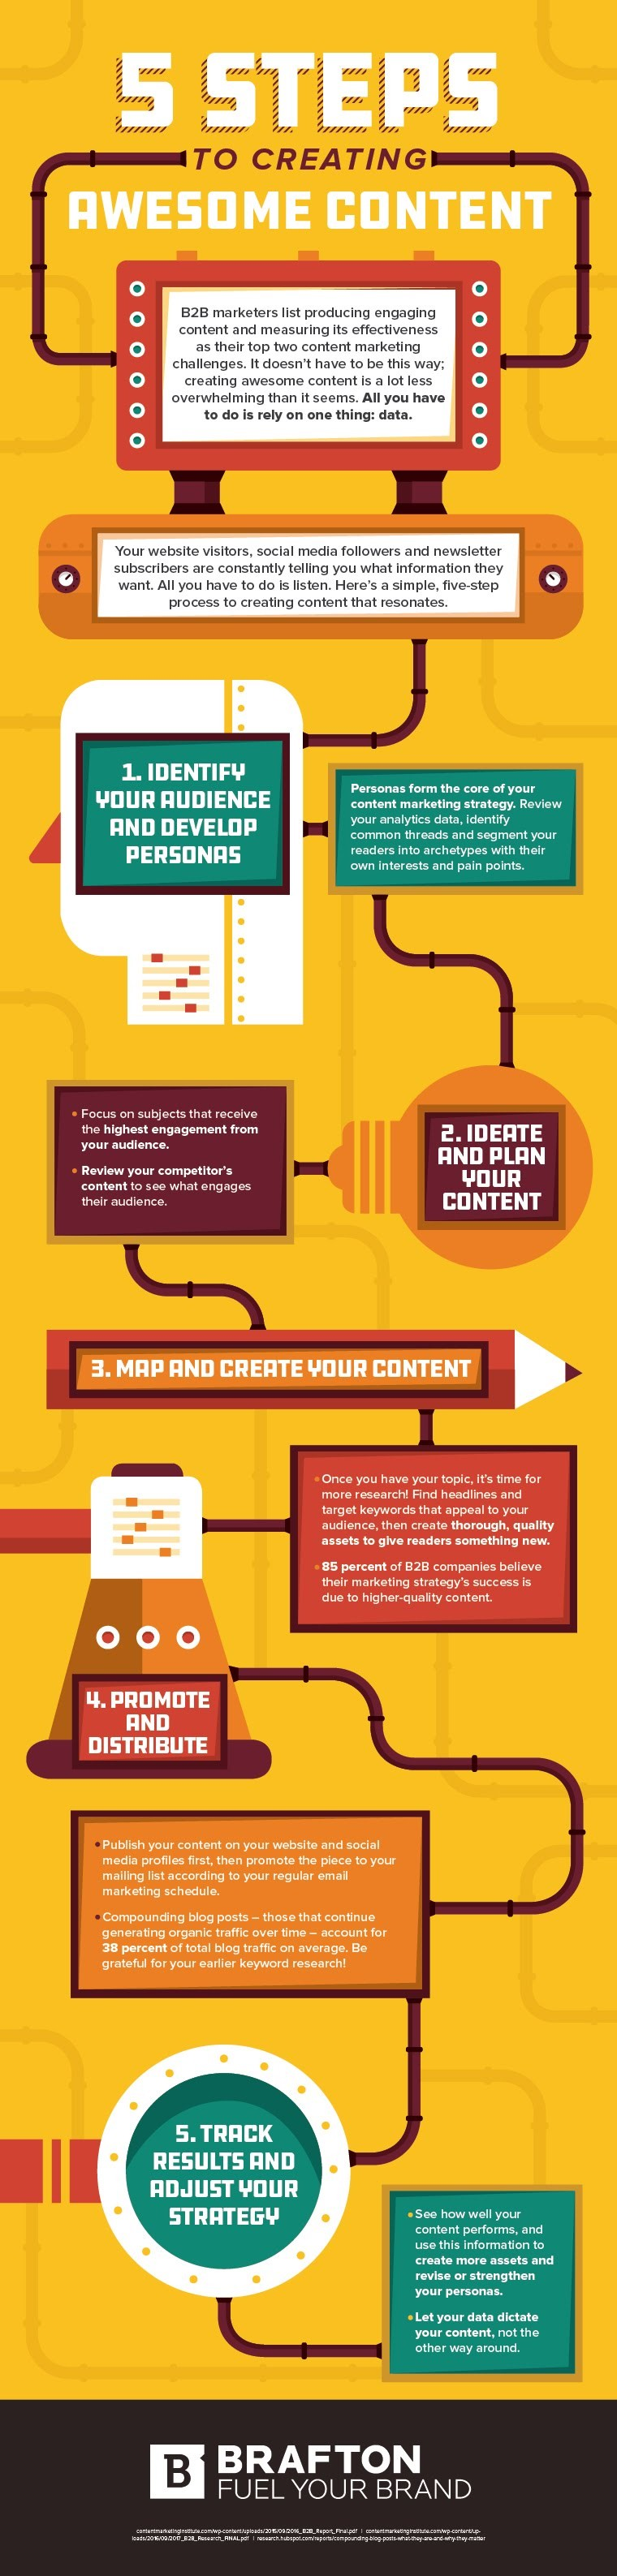 5 Steps to Creating Awesome Content [Infographic] | Social Media Today